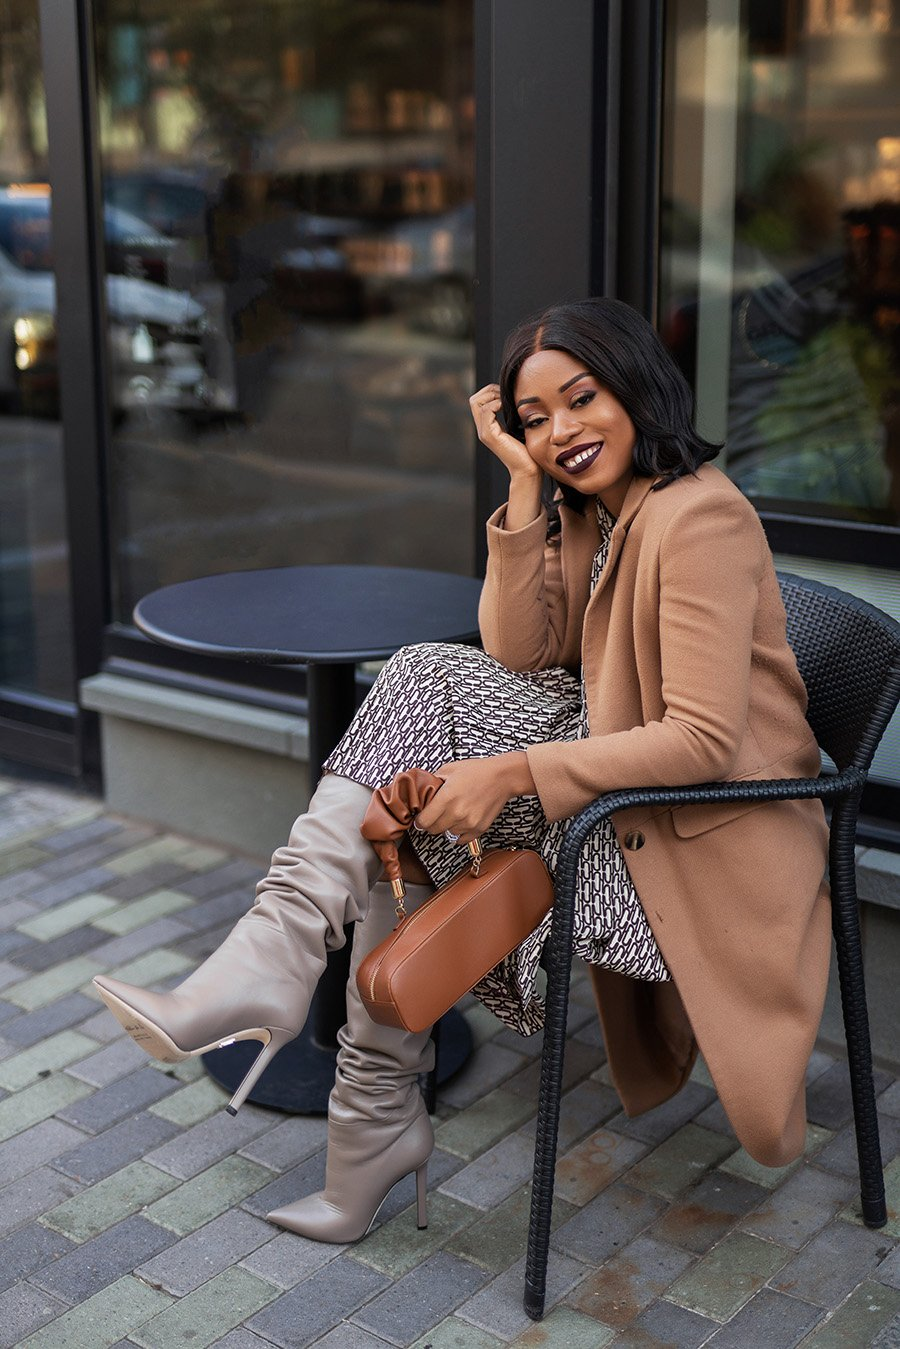 Stella-Adewunmi-of-jadore-fashion-shares-winter-work-dress-with-knee-high-boots